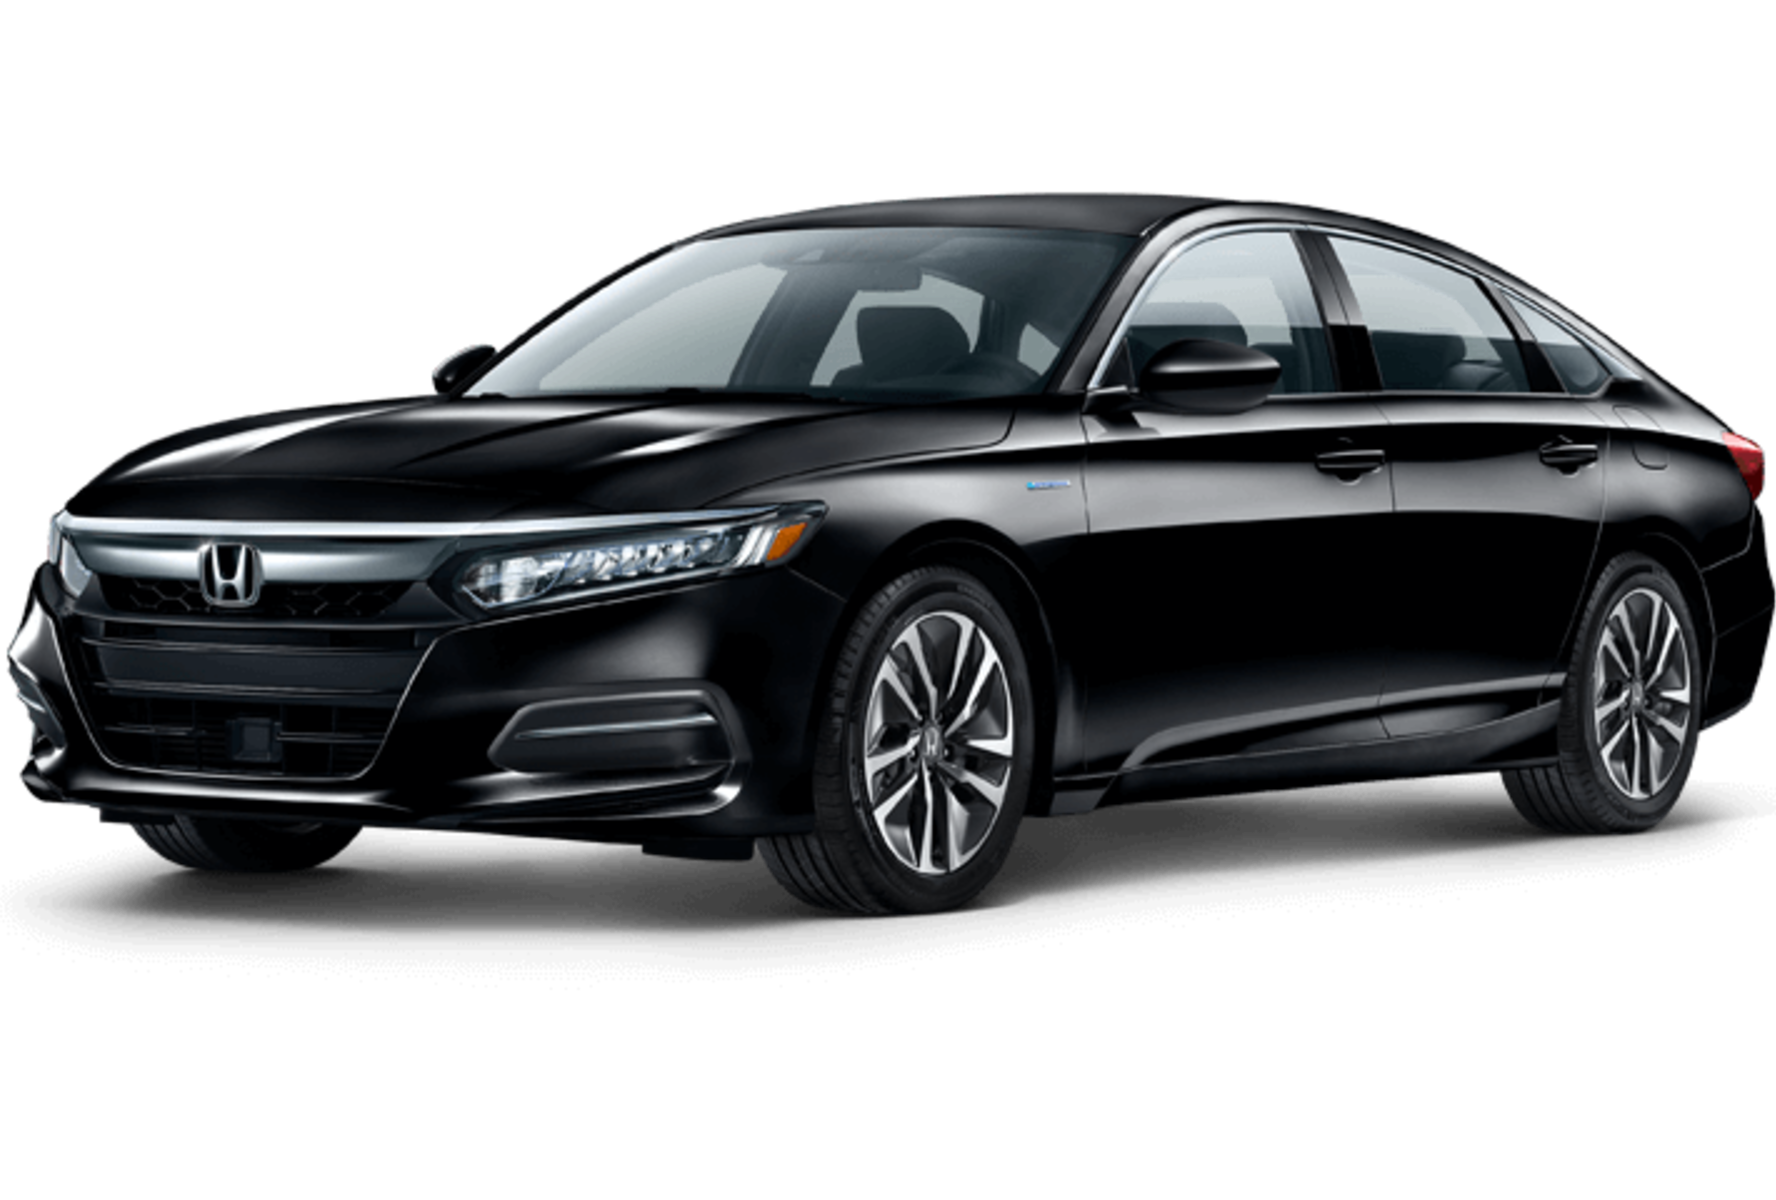 The 2019 Honda Accord Hybrid for sale at Headquarter Honda in Clermont, FL